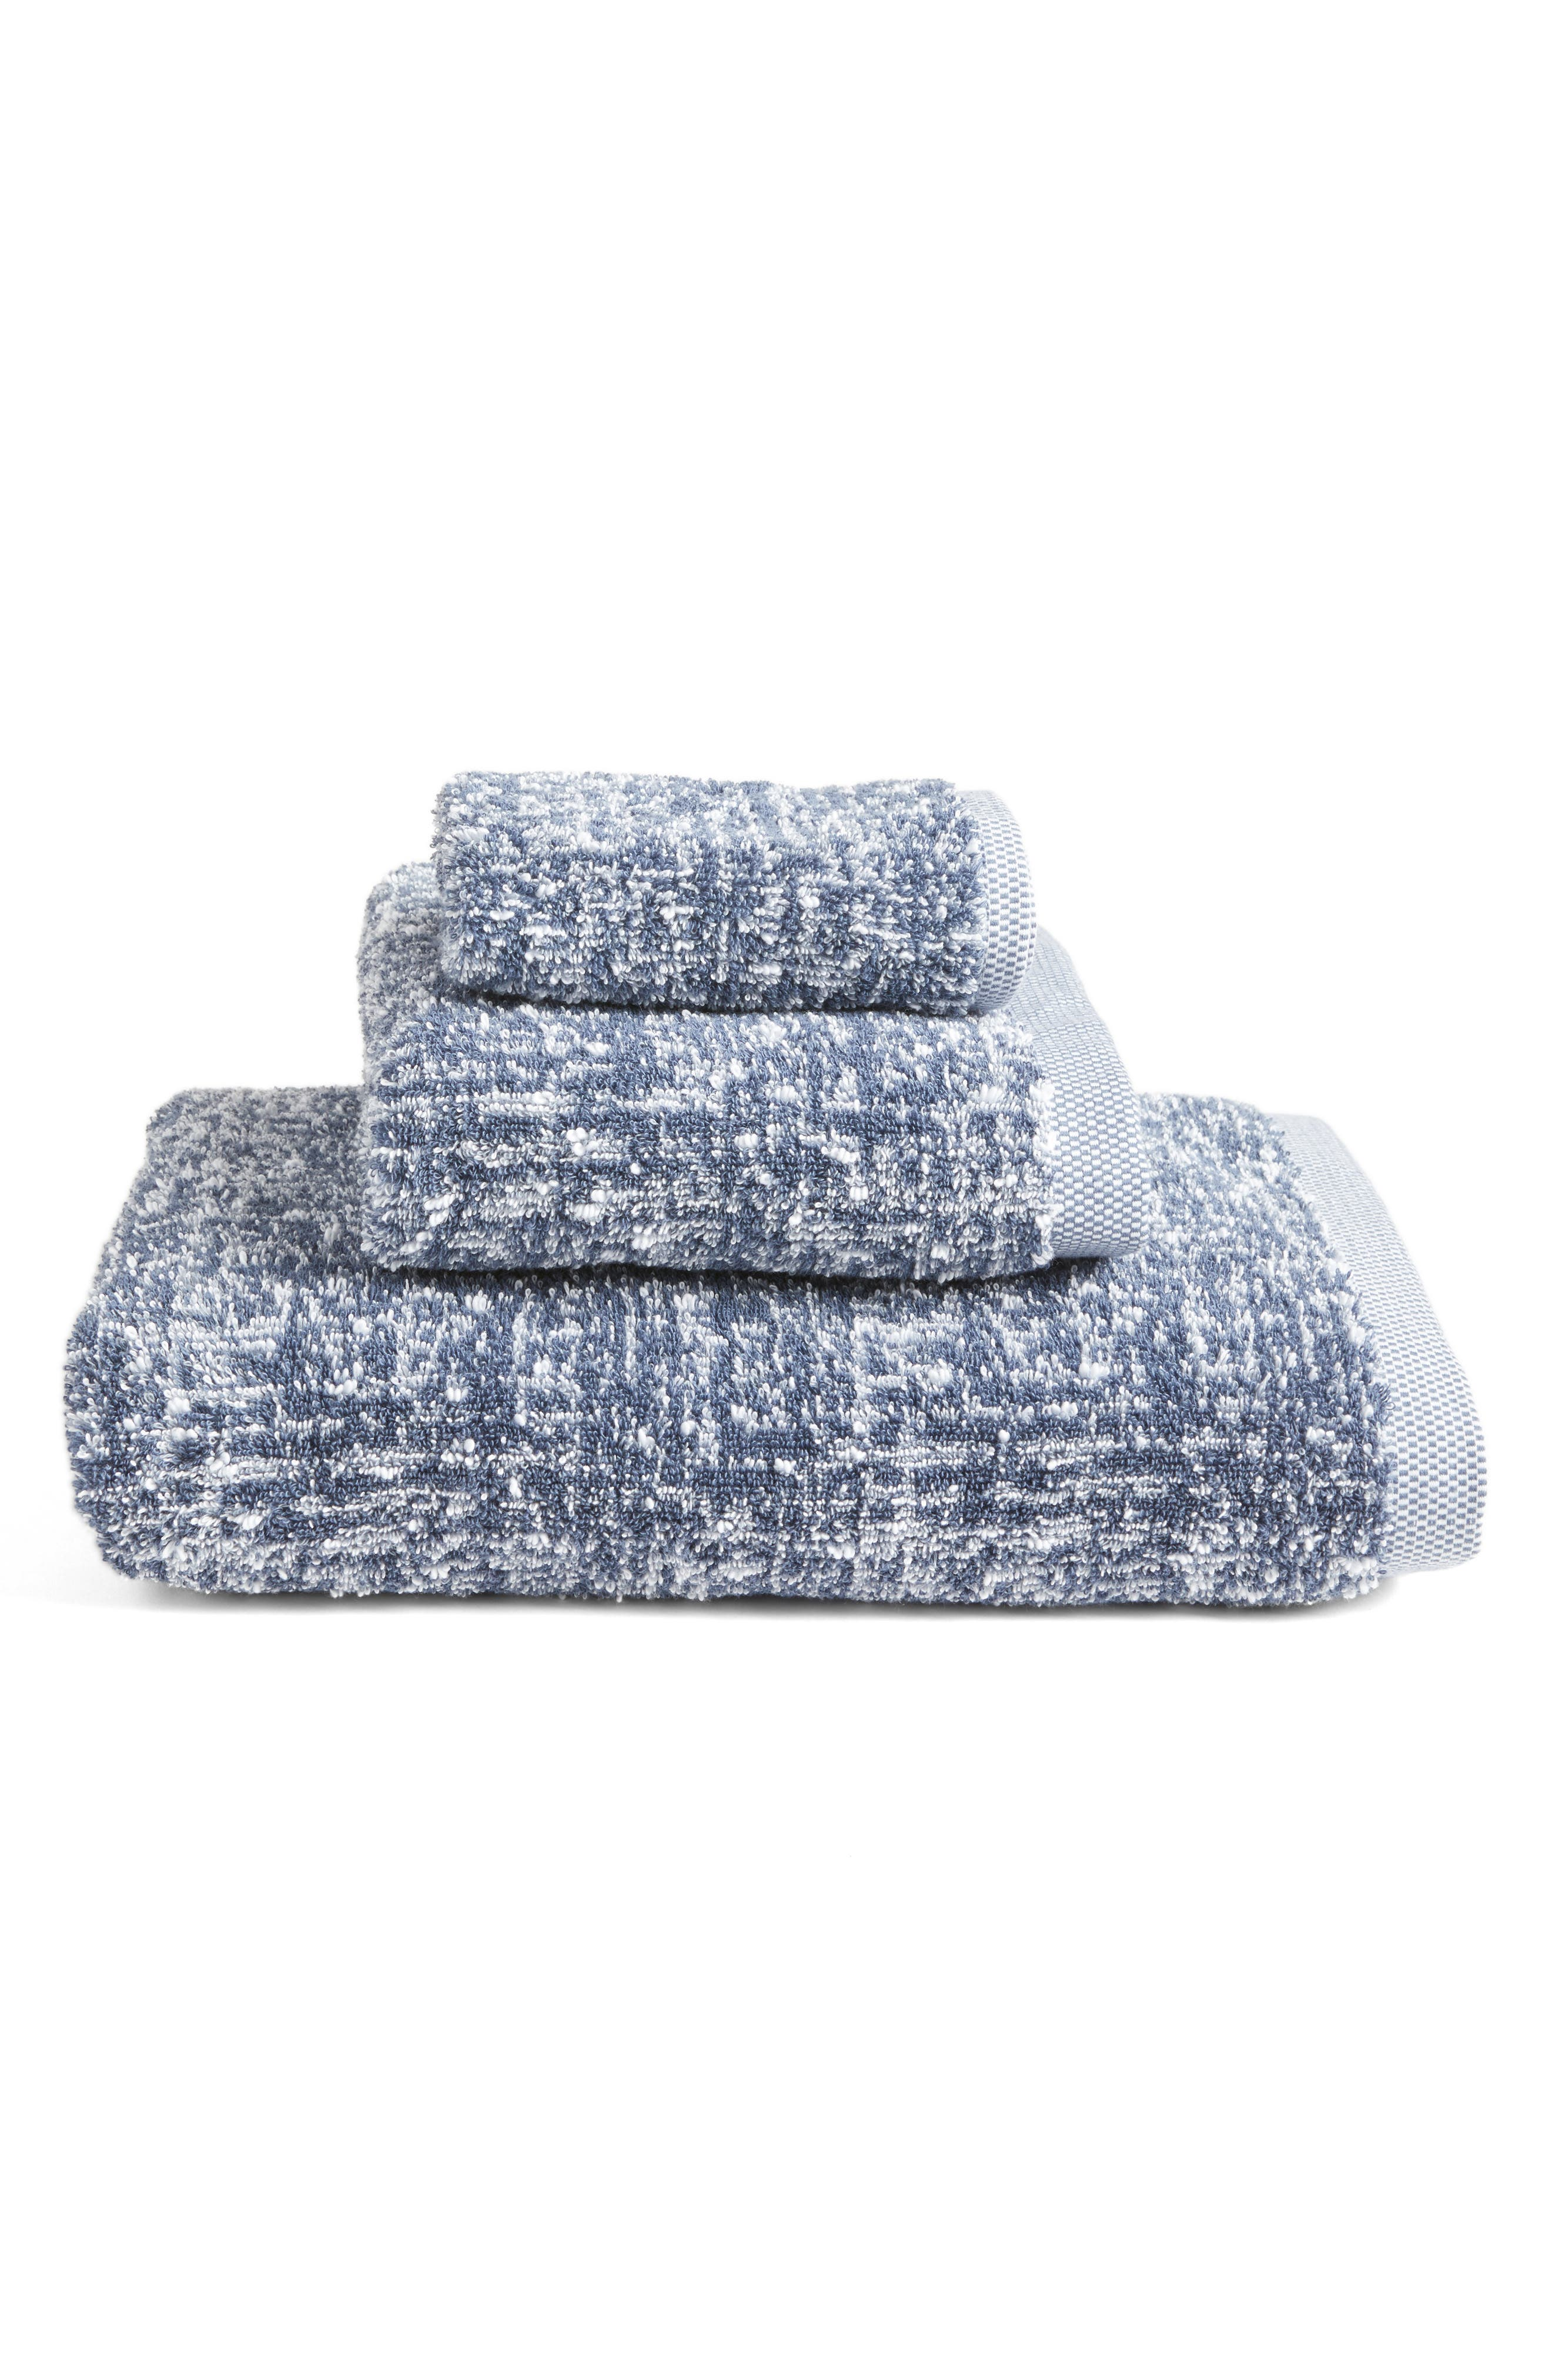 Nordstrom at Home Tweed Jacquard Towel Collection